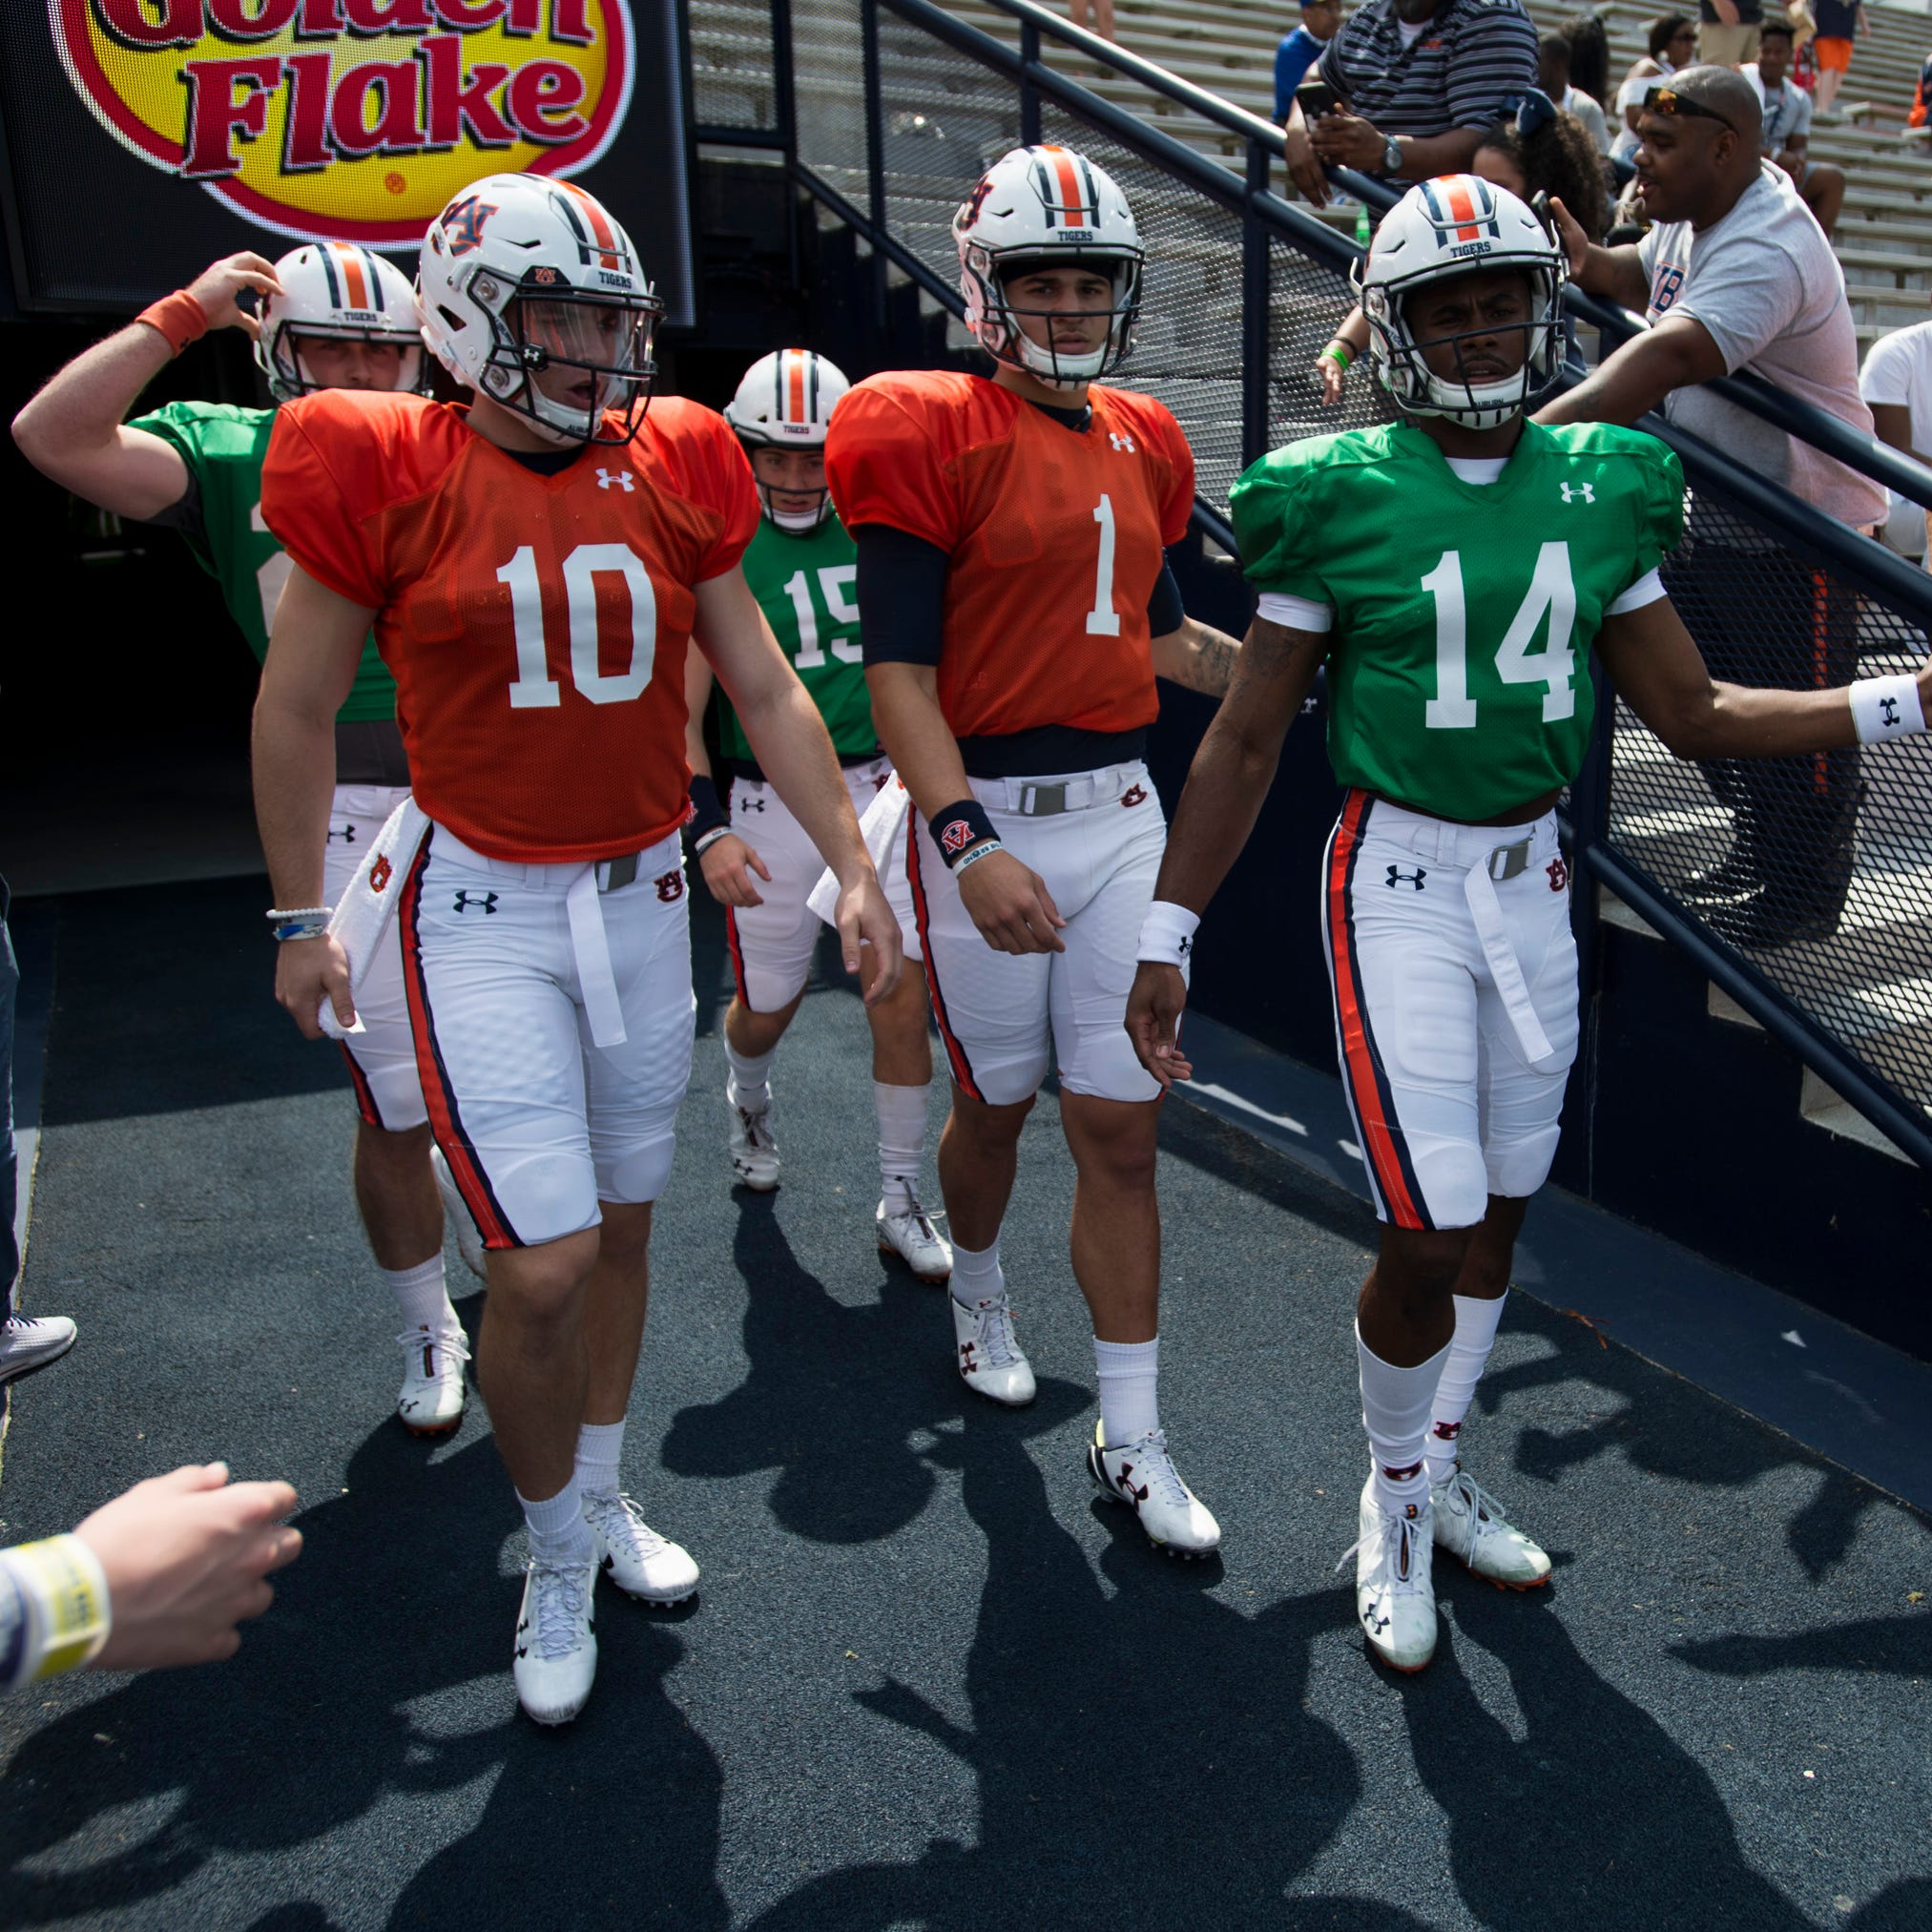 Quarterbacks Gatewood, Nix, Willis take turns in spotlight during Auburn's A-Day spring game